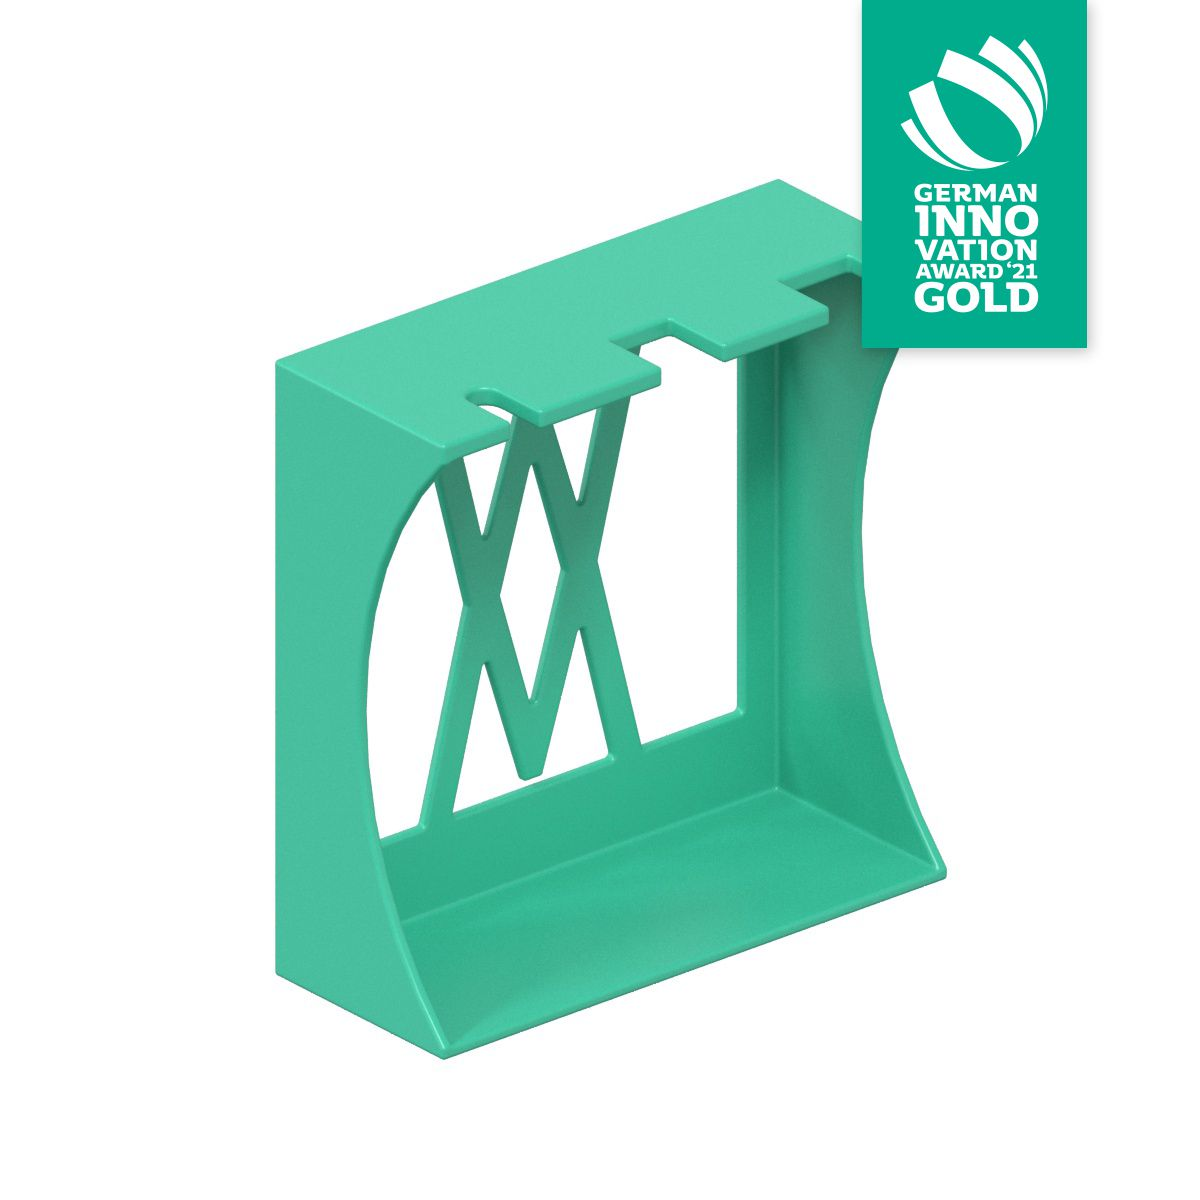 094_02_gia.jpg Download OBJ file Stand for Rachets 3pcs 094 I Table Stand • Object to 3D print, Wiesemann1893